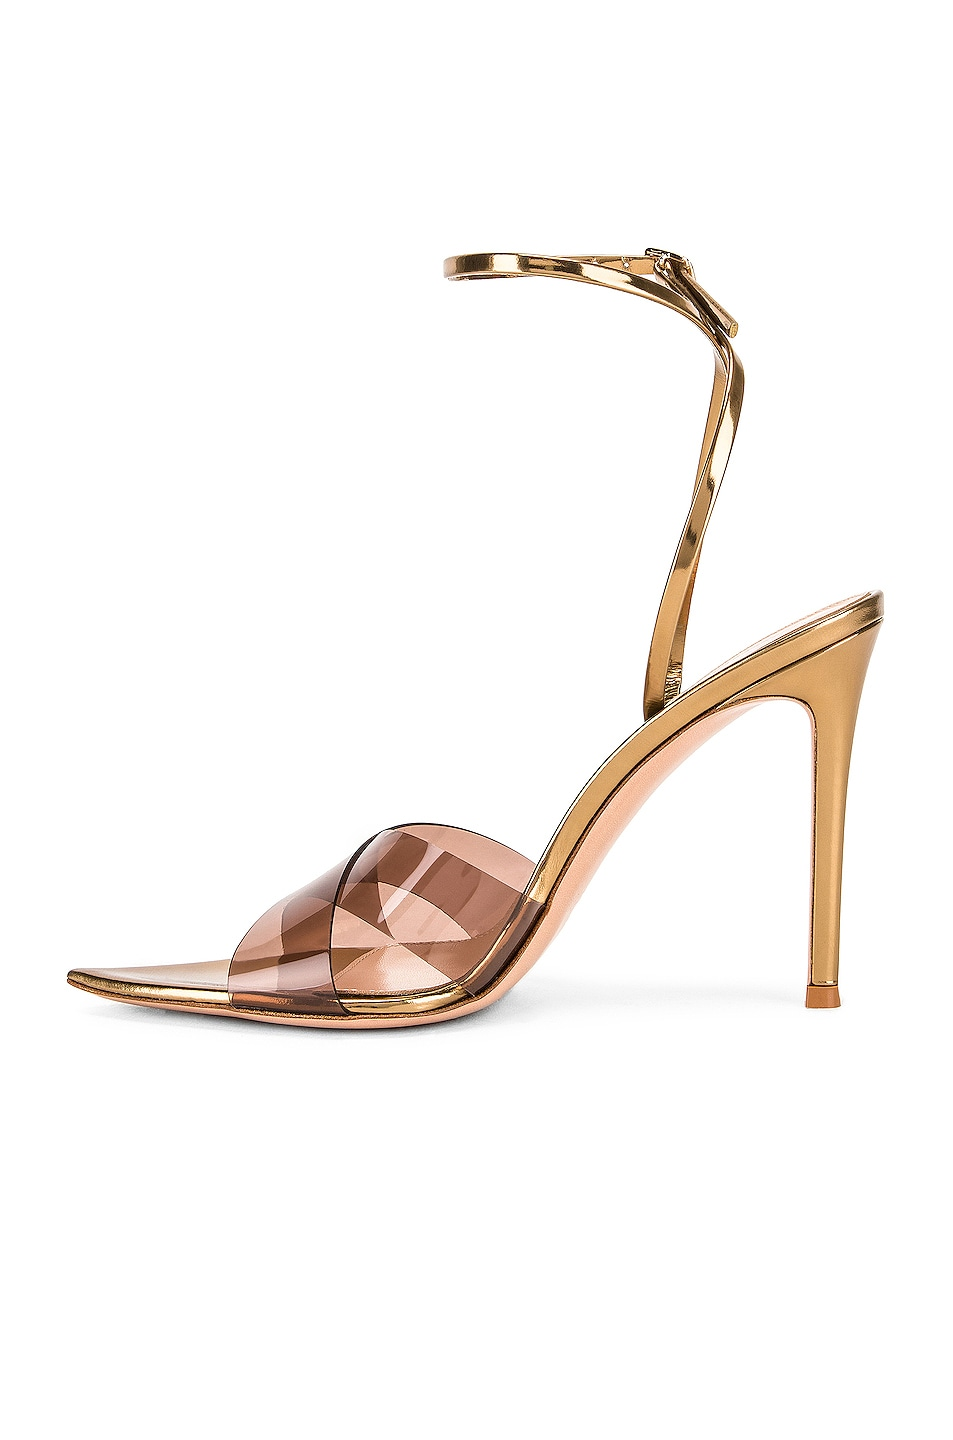 Image 5 of Gianvito Rossi Stark Plexi Ankle Strap Heels in Blush & Gold